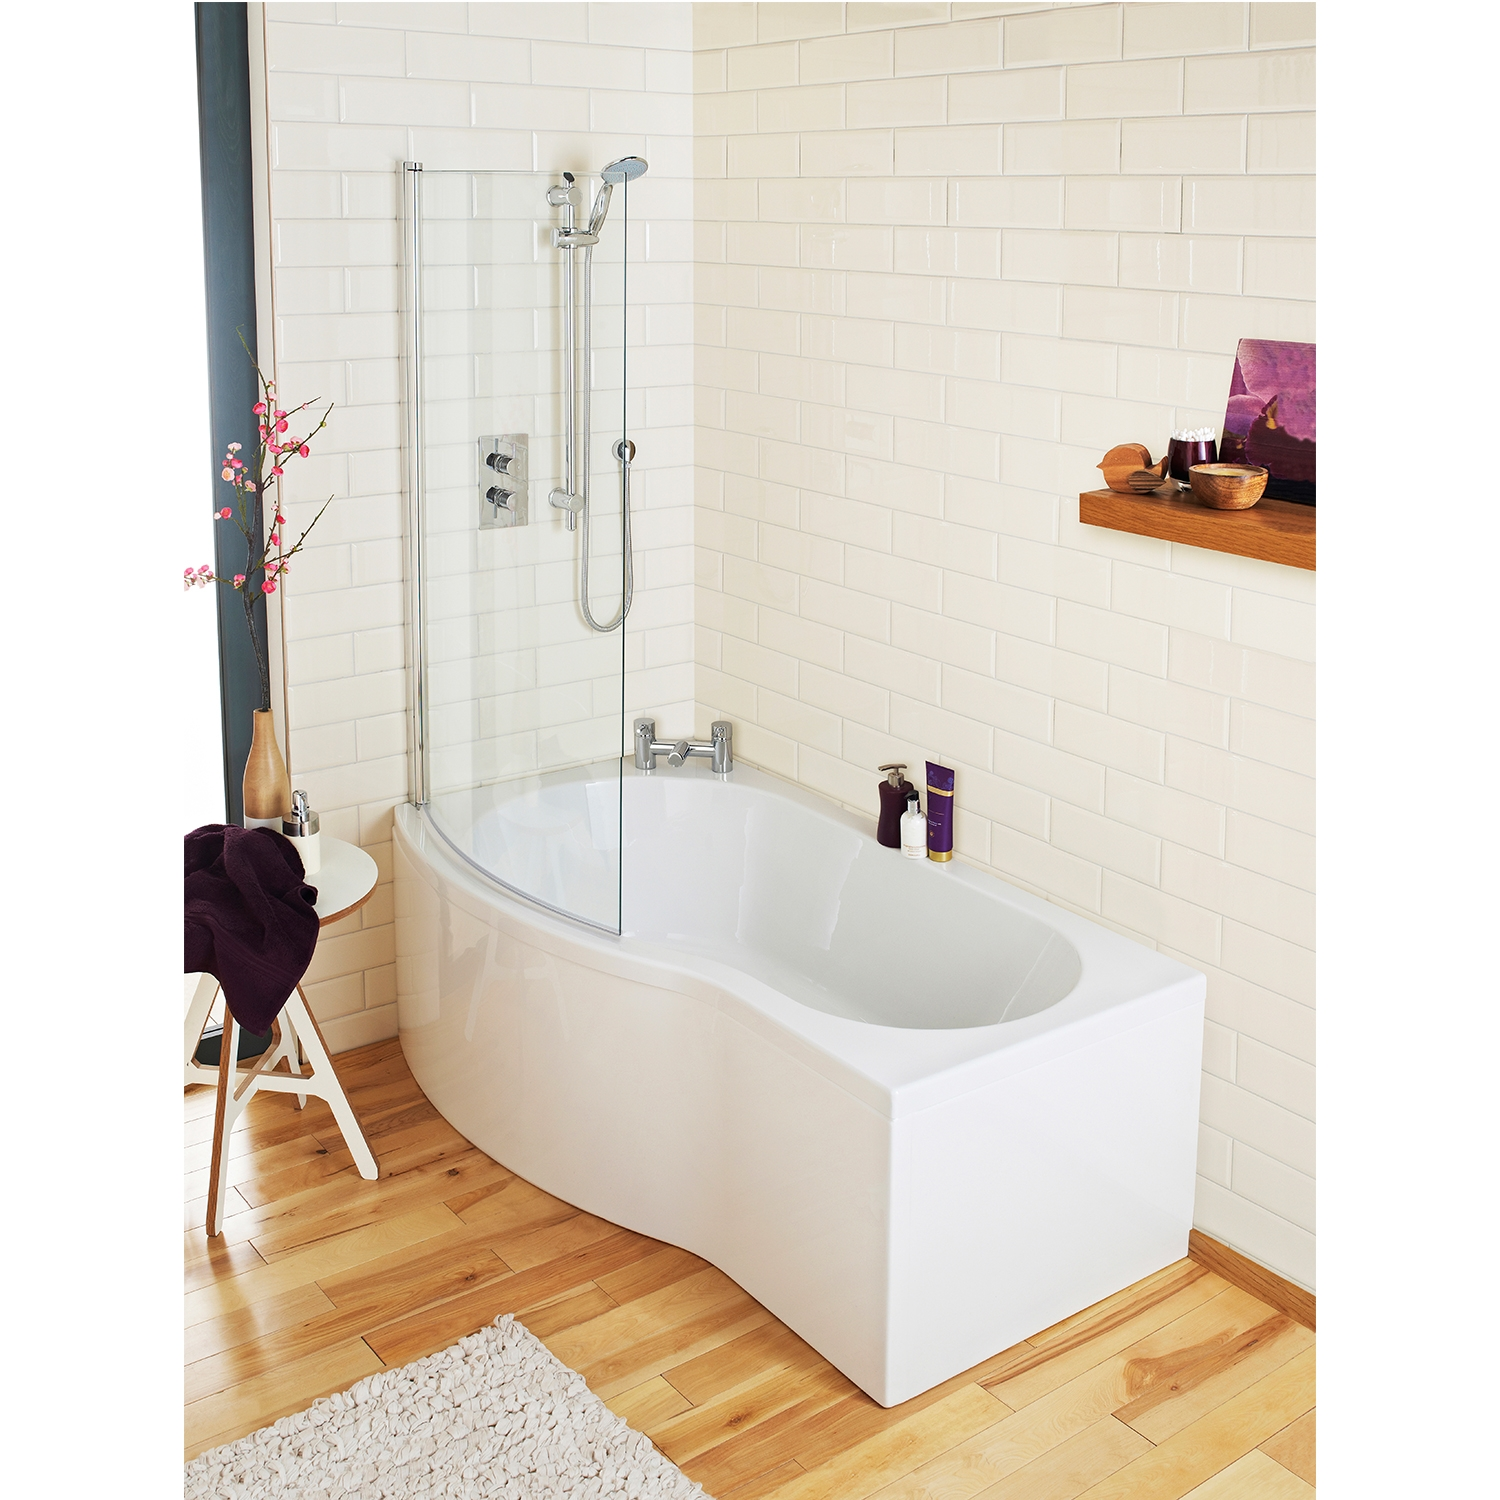 Premier b-Shaped Curved Shower Bath 1700mm x 735mm/900mm Left Handed